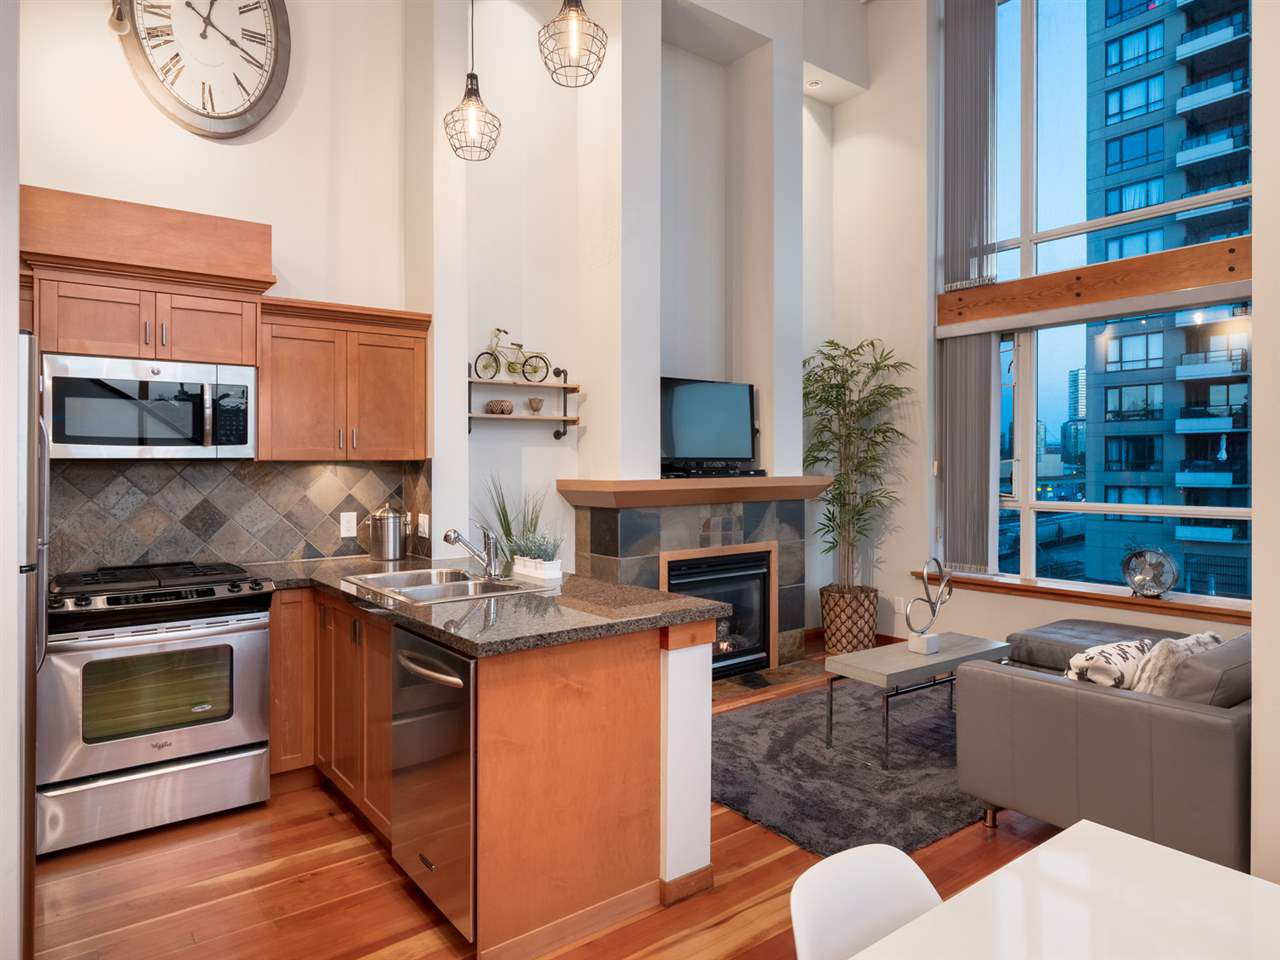 """Main Photo: 329 10 RENAISSANCE Square in New Westminster: Quay Condo for sale in """"MURANO LOFTS"""" : MLS®# R2330423"""